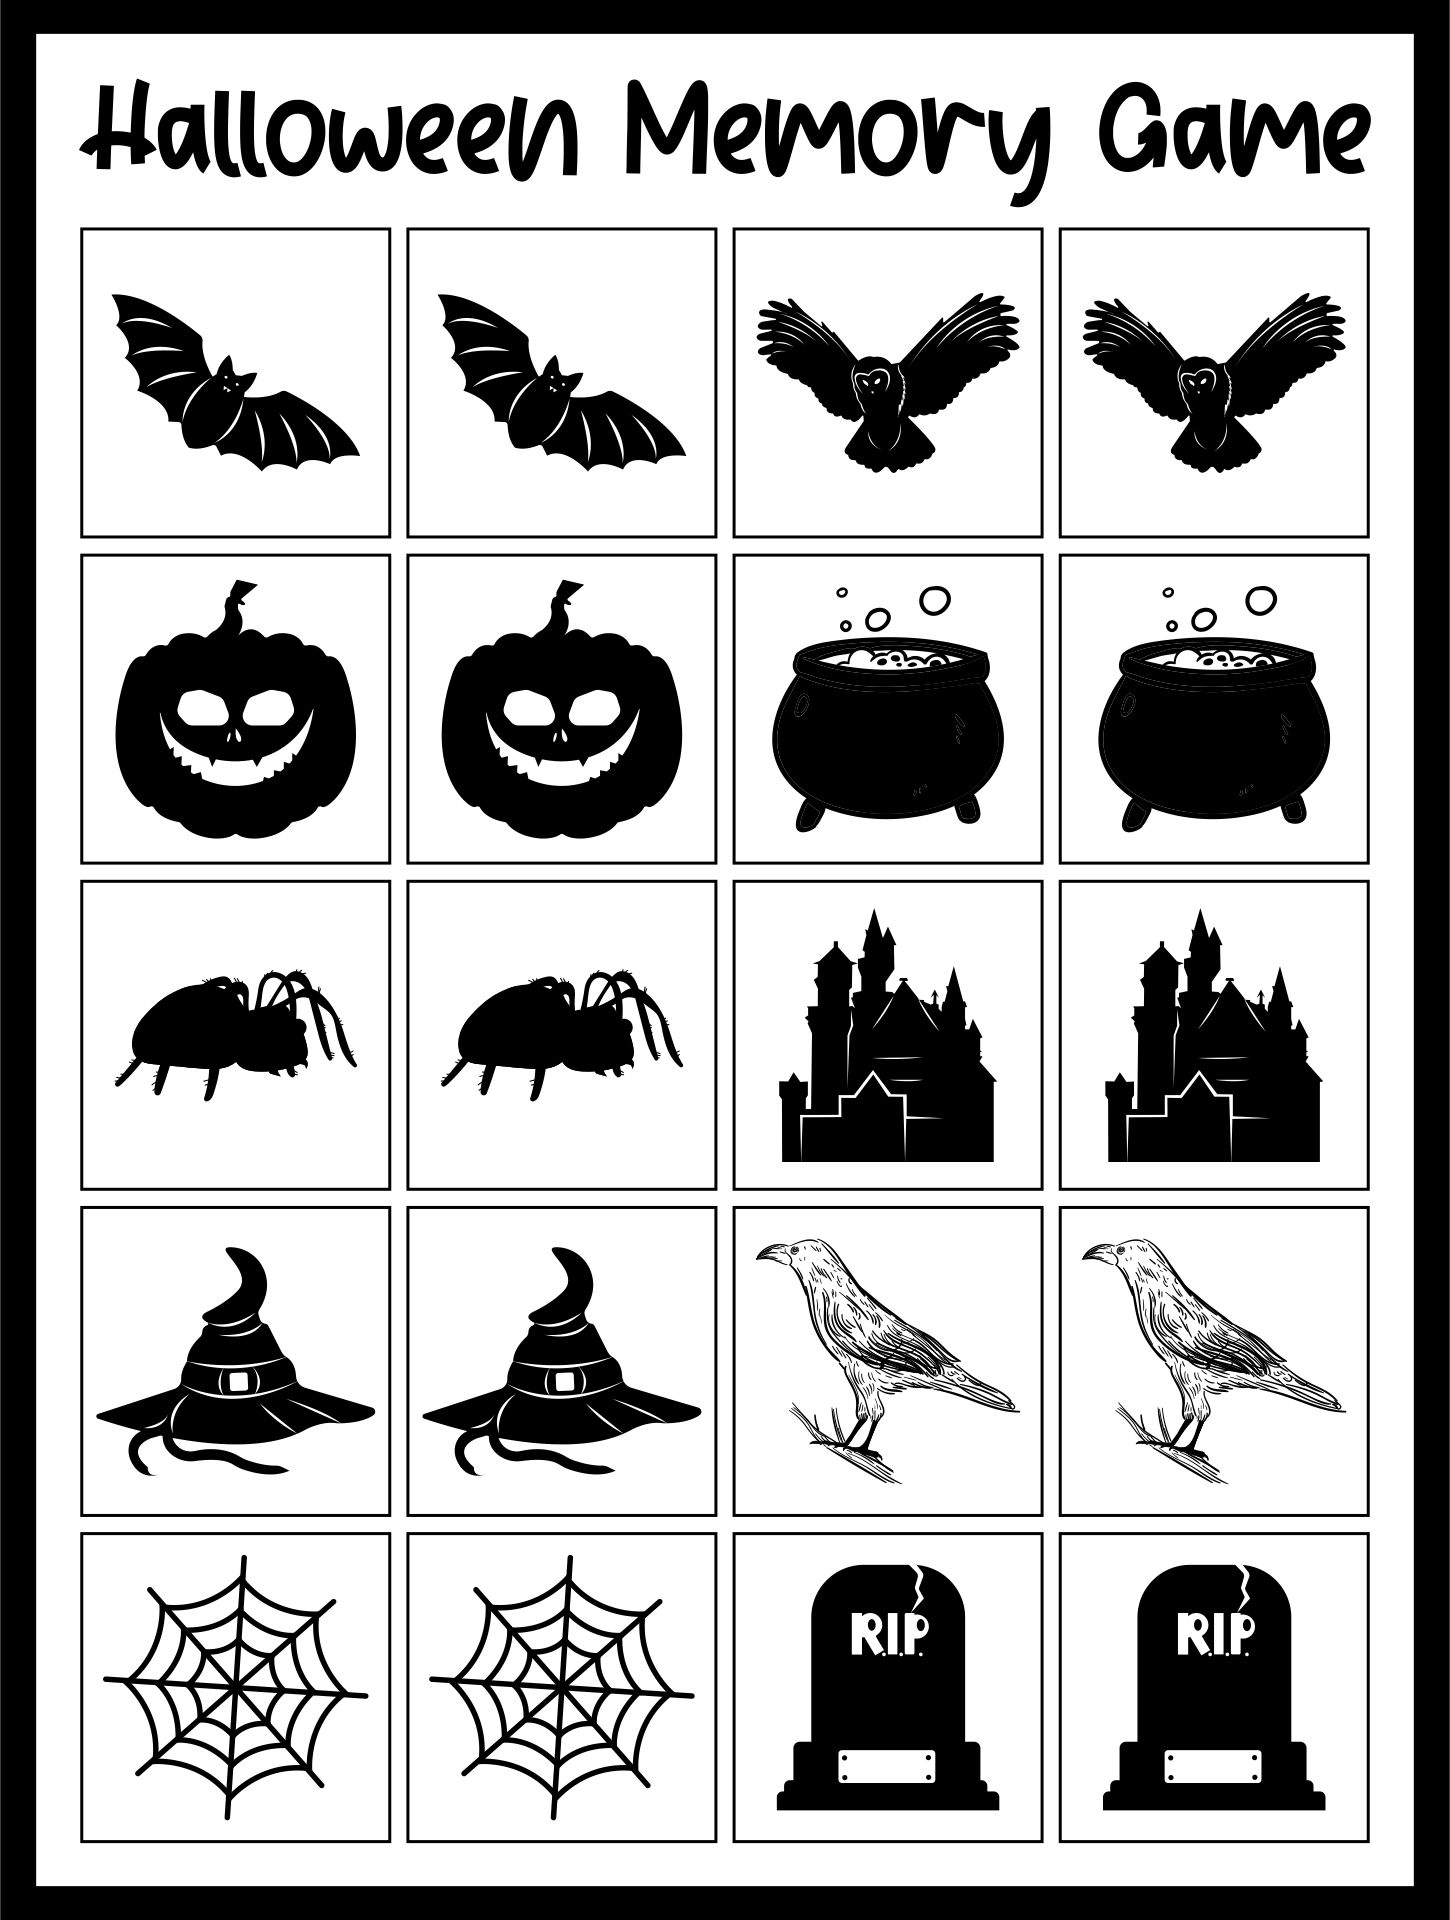 Educational Children Activity Halloween Memory Game For Kids And Toddlers